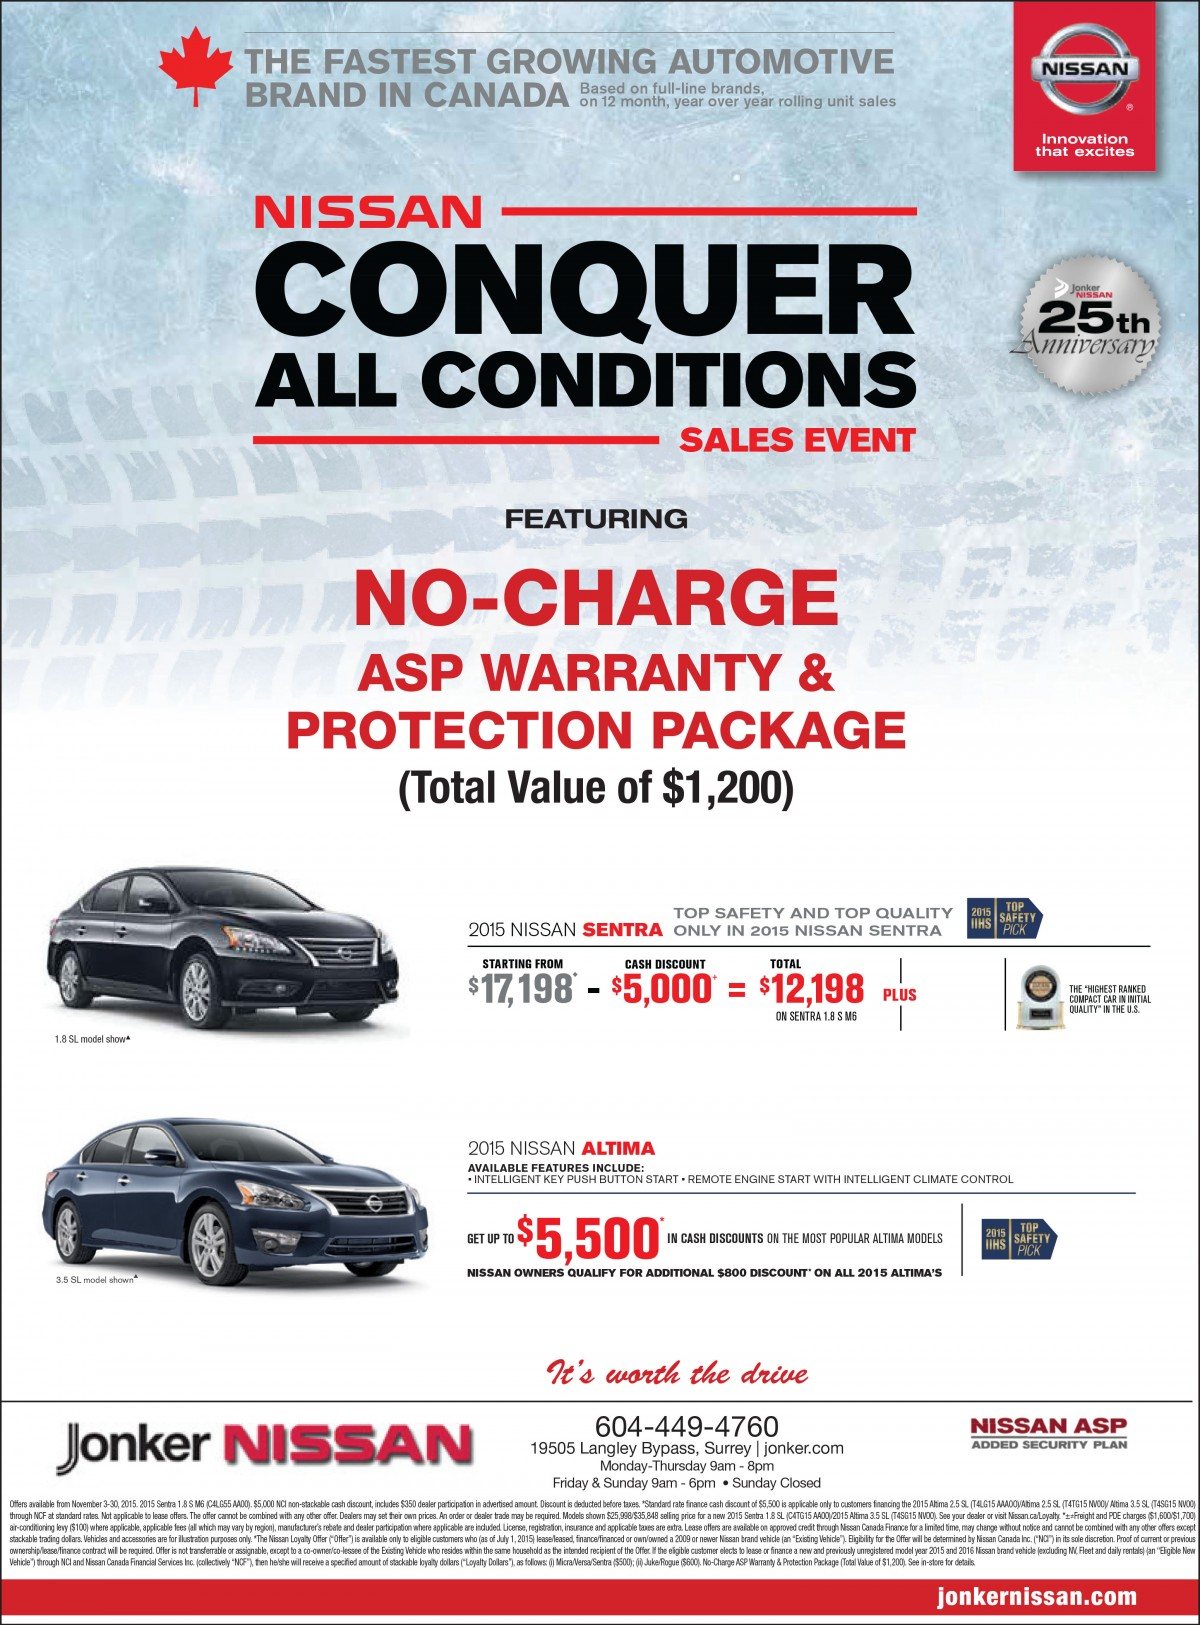 NO-CHARGE ASP Warranty & Protection Package